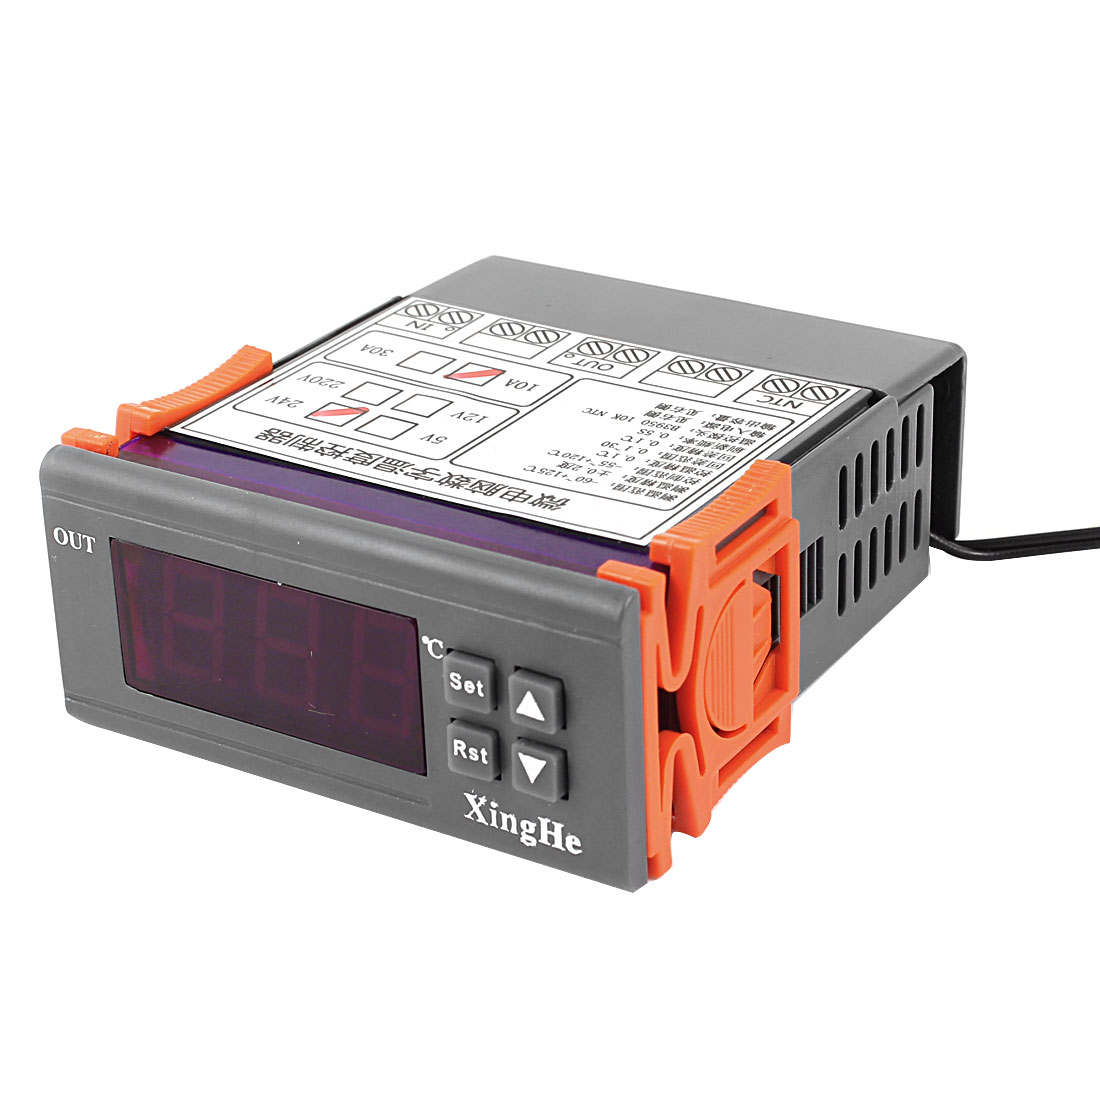 AC 24V 10A -55C to +120C Temperature Controller Gray Orange w Thermocouple